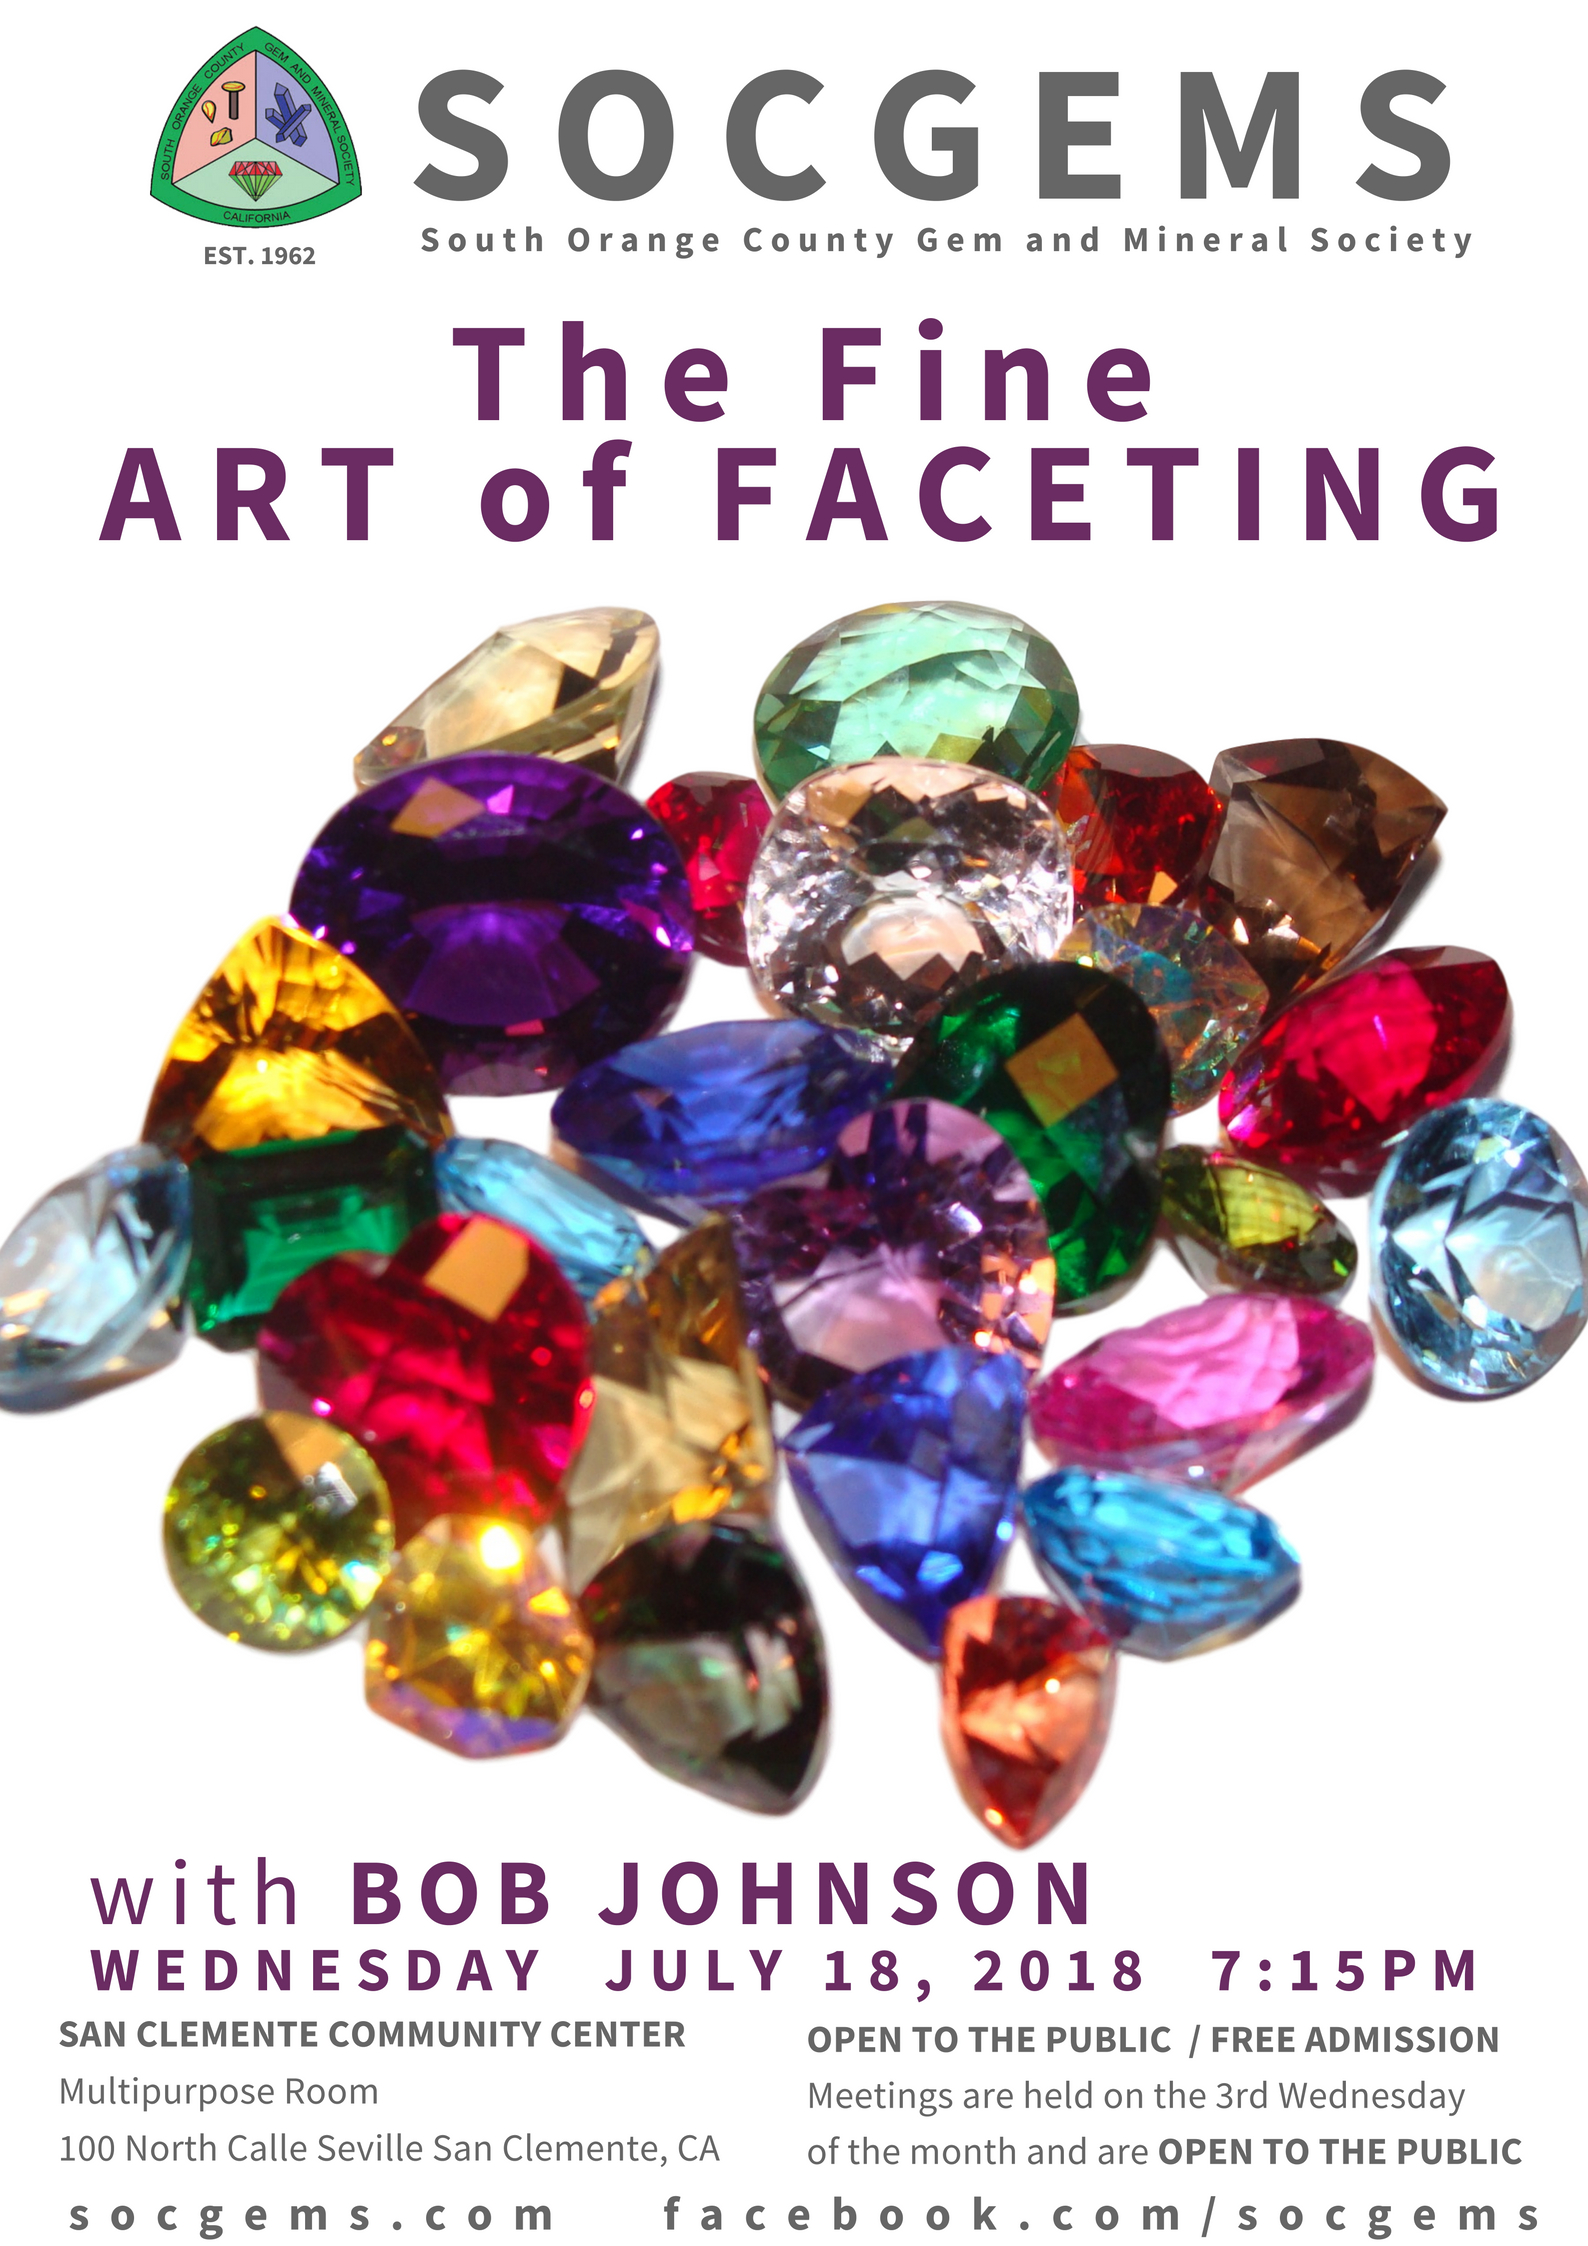 bob johnson july 2018 socgems faceting